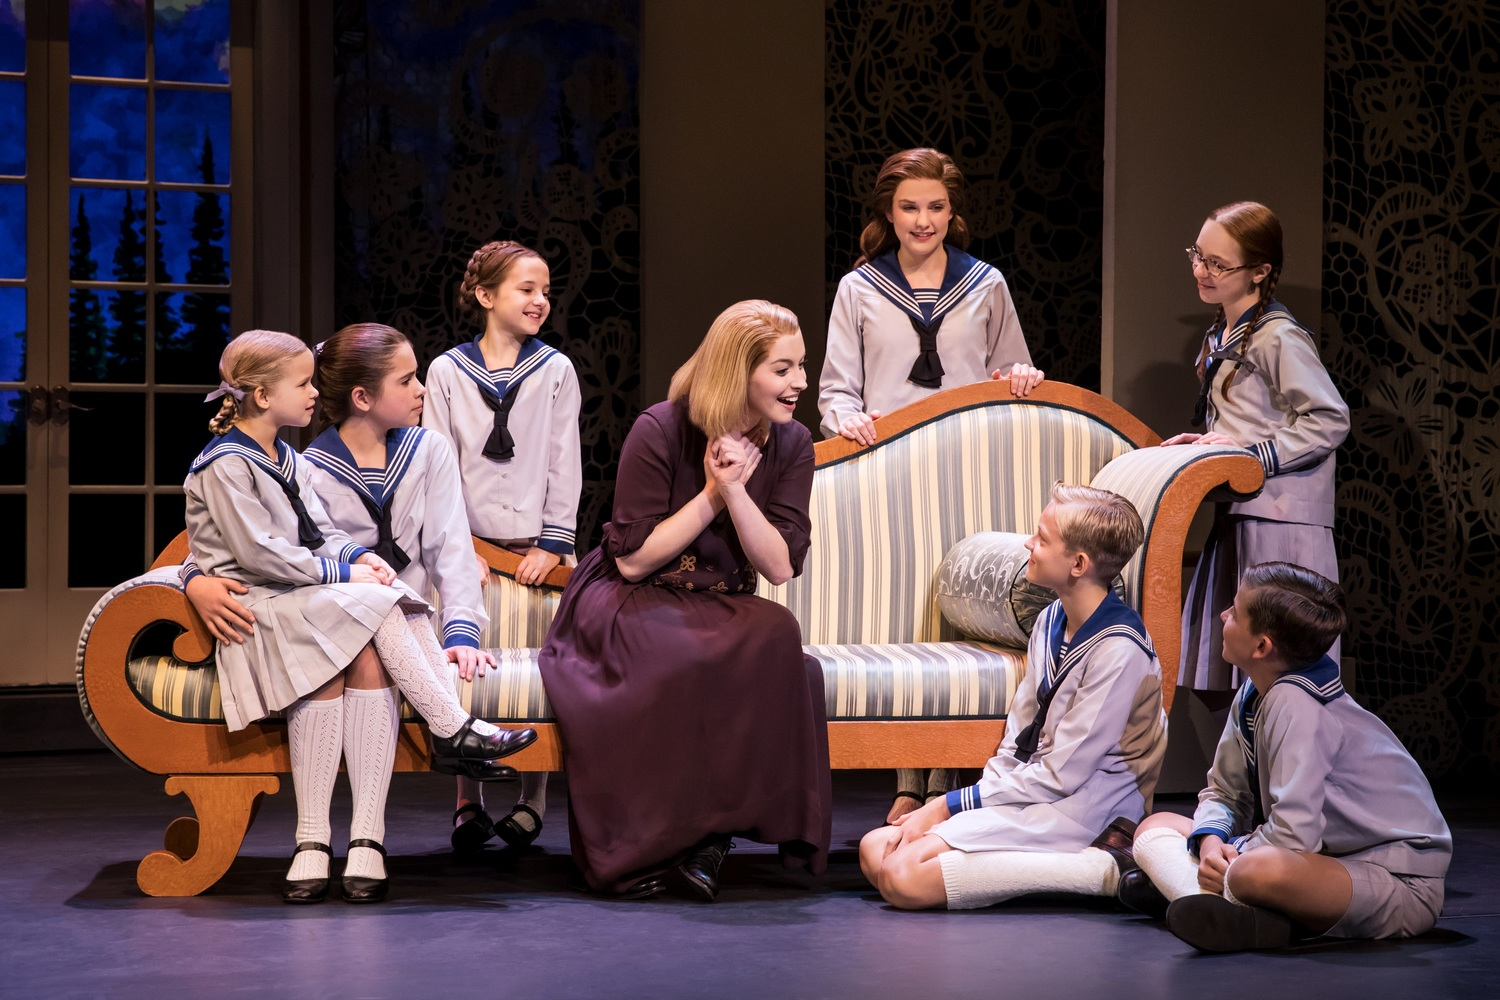 BWW Review: The Hills are Revived in THE SOUND OF MUSIC at Altria Theatre